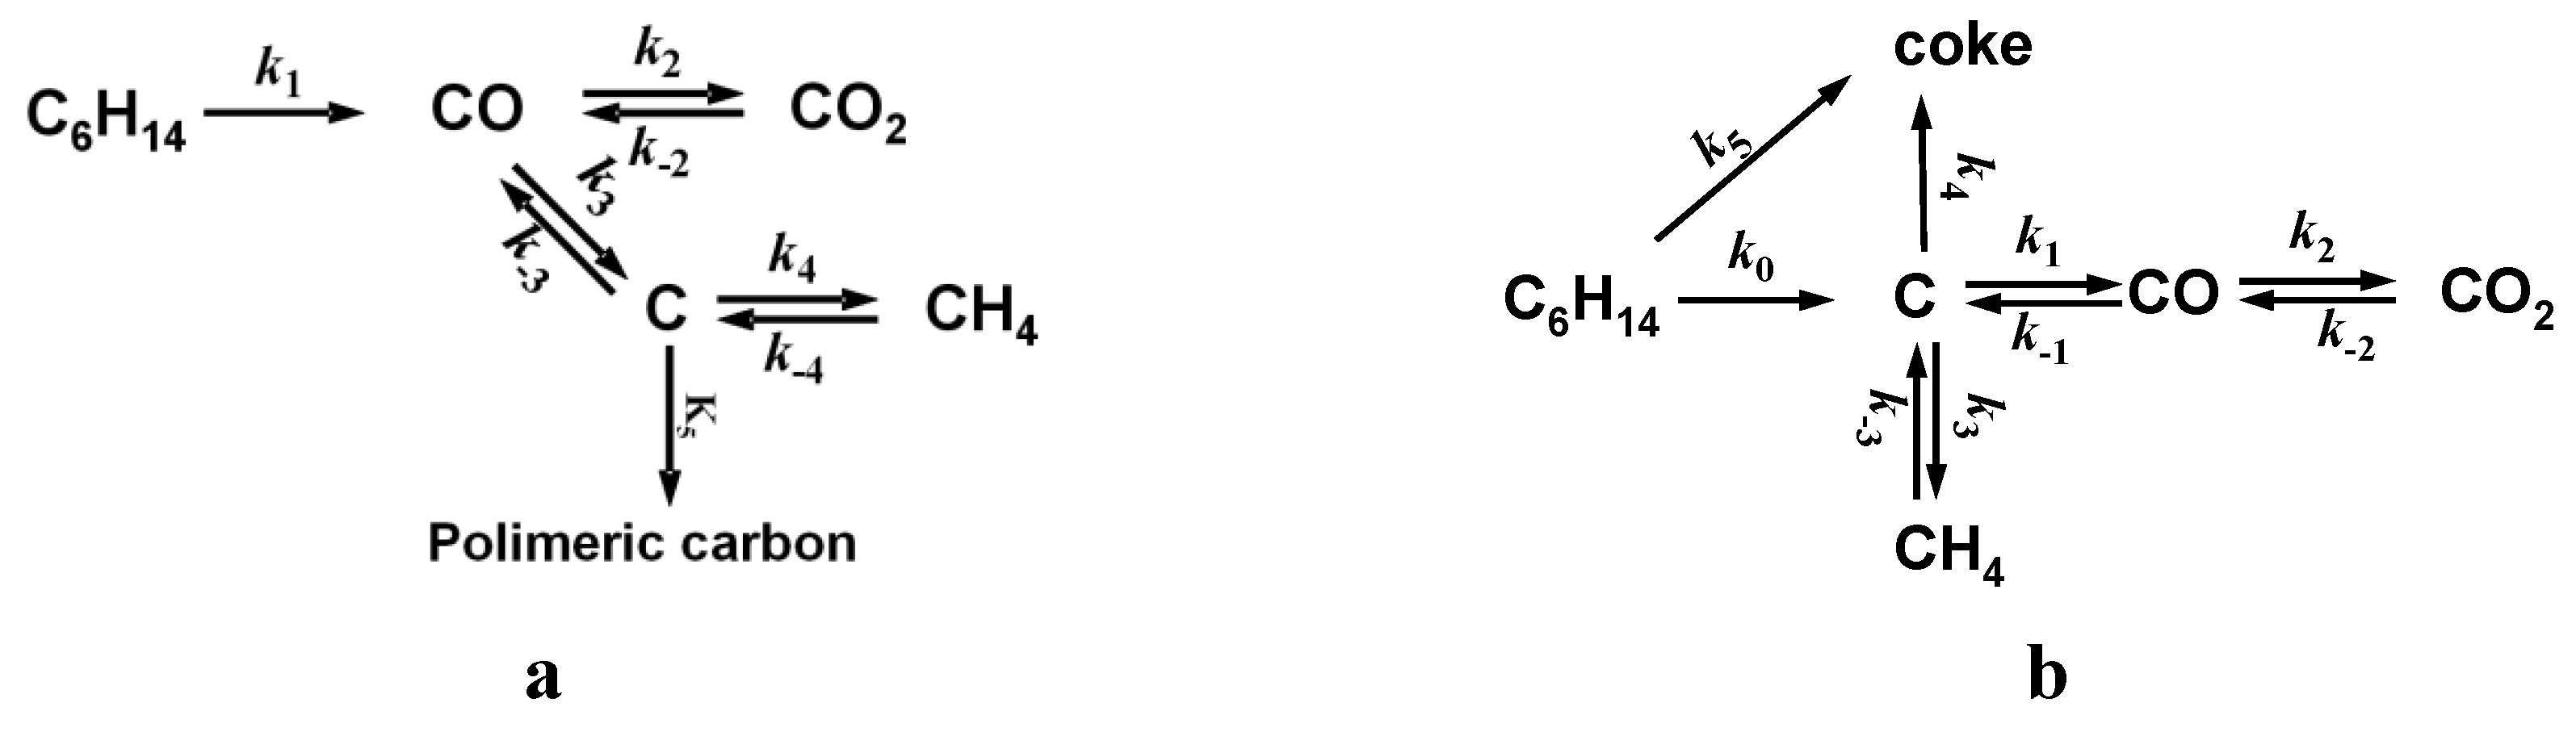 Catalysts 04 00196 g010